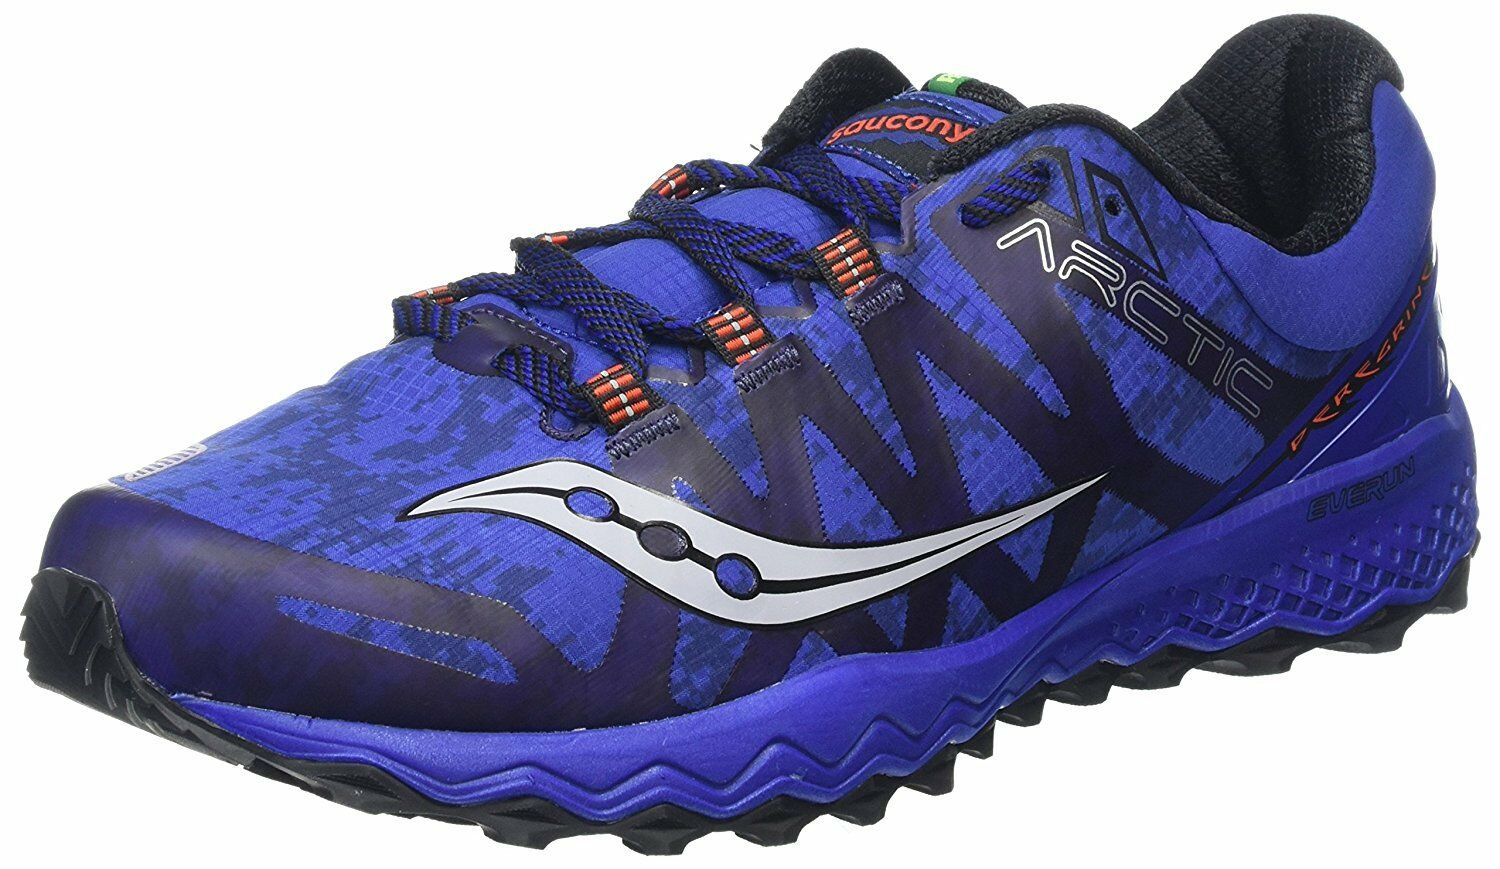 Saucony Mens Peregrine 7 Ice+ Running shoes, bluee, 12 Medium US